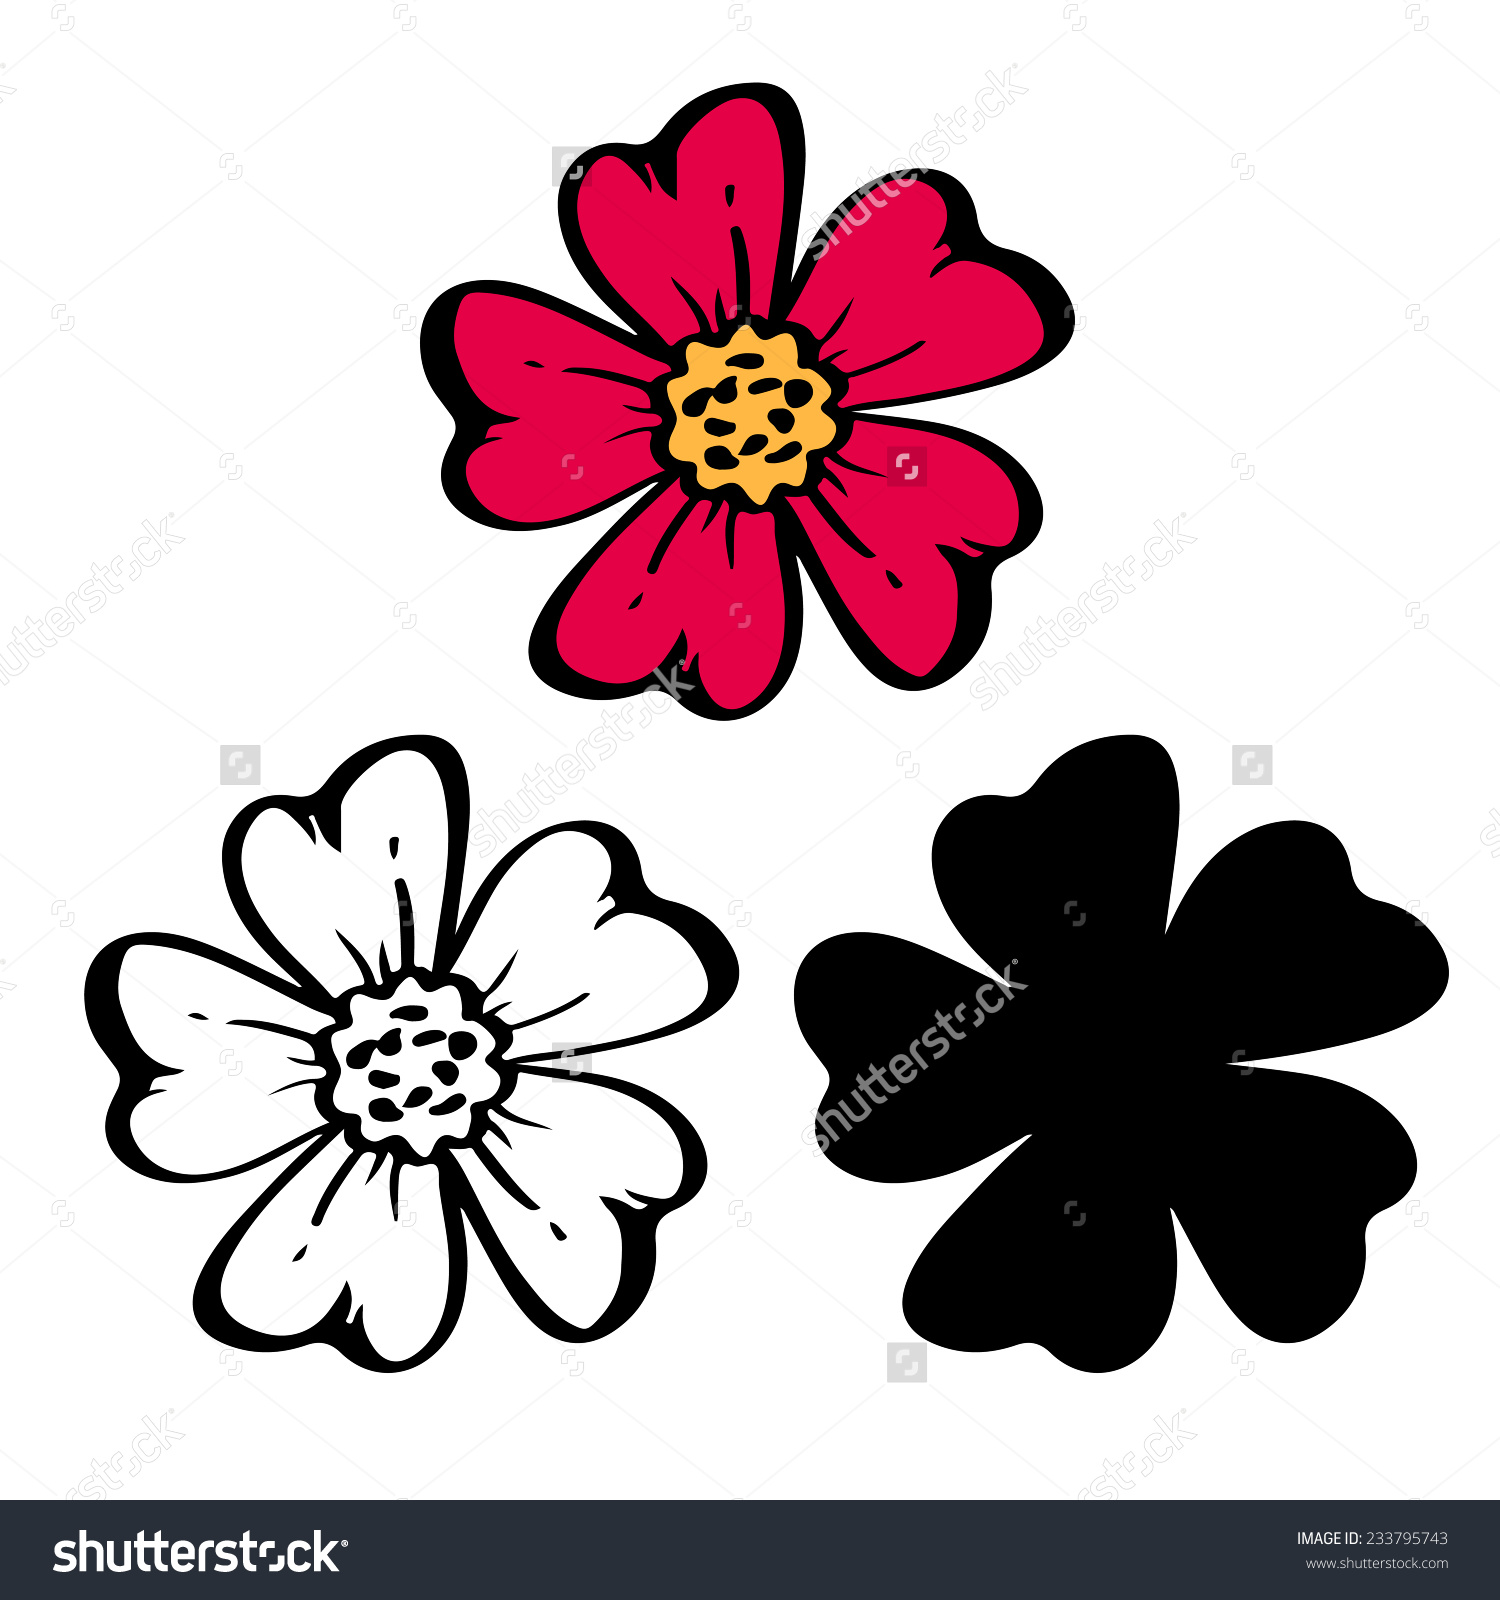 Pomegranate Flowers Color Black Silhouette Line Stock Vector.